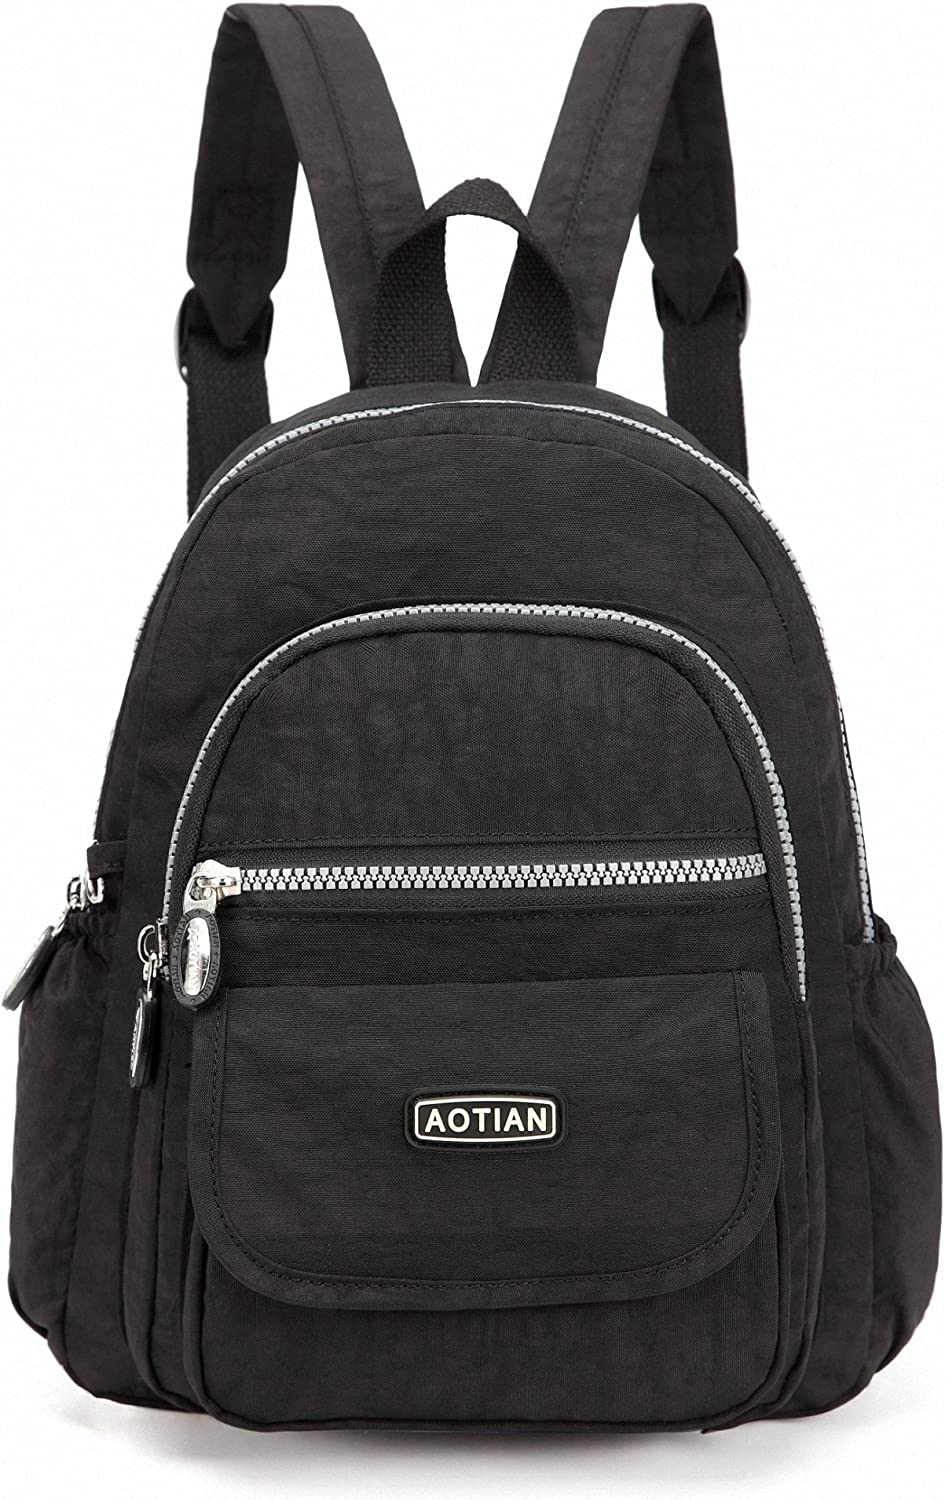 AOTIAN Mini Nylon Women Backpacks Casual Lightweight Small Daypack